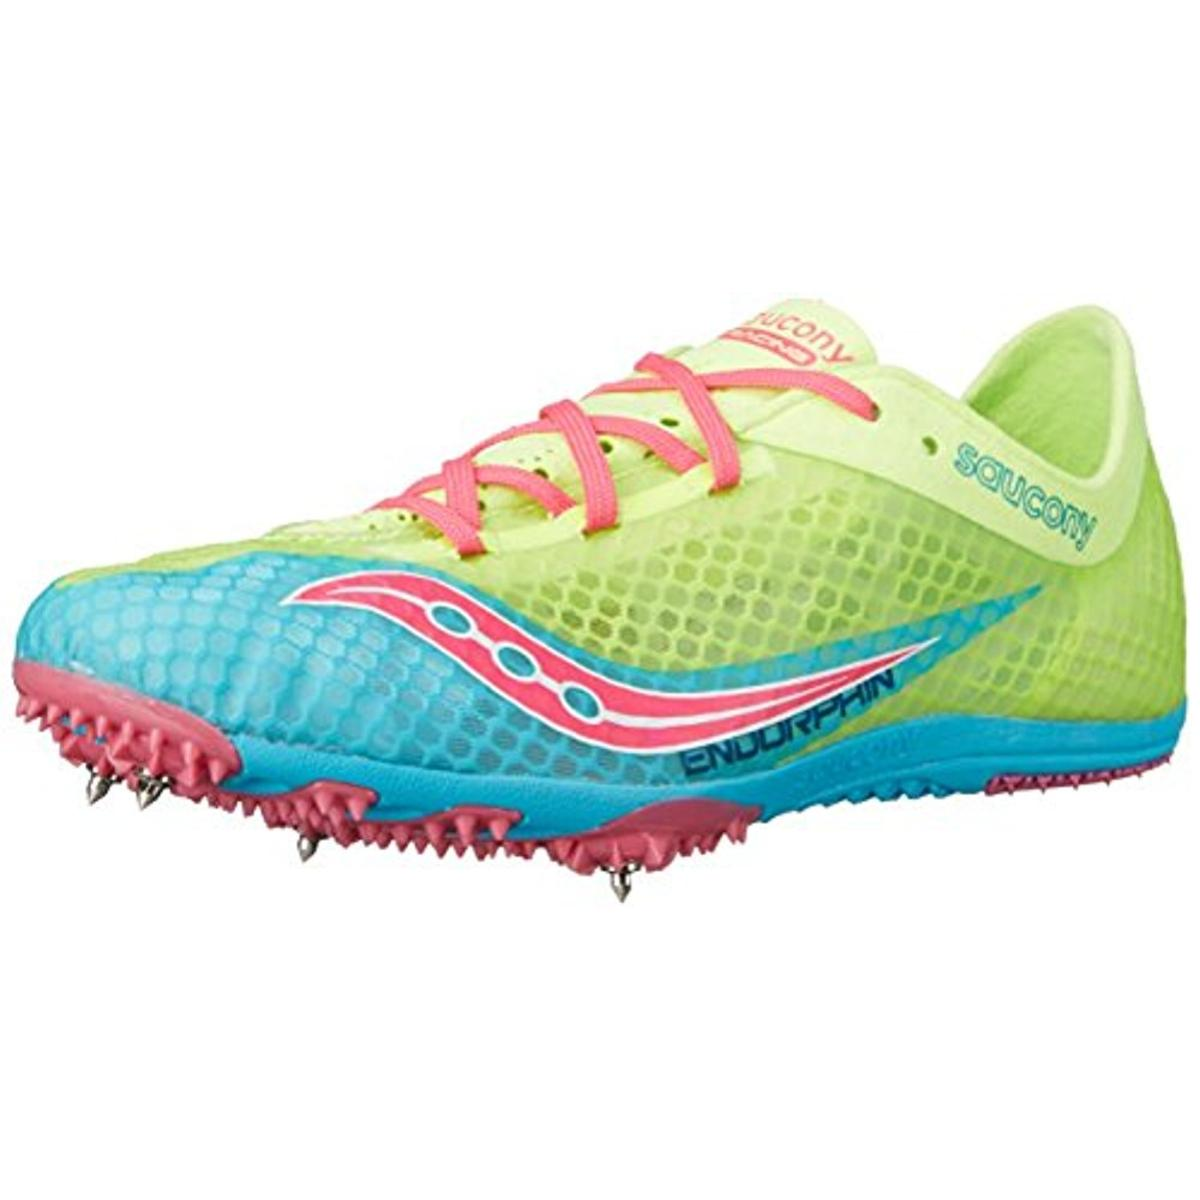 Saucony Womens Endorphin Mesh Track Field Running Shoes by Saucony